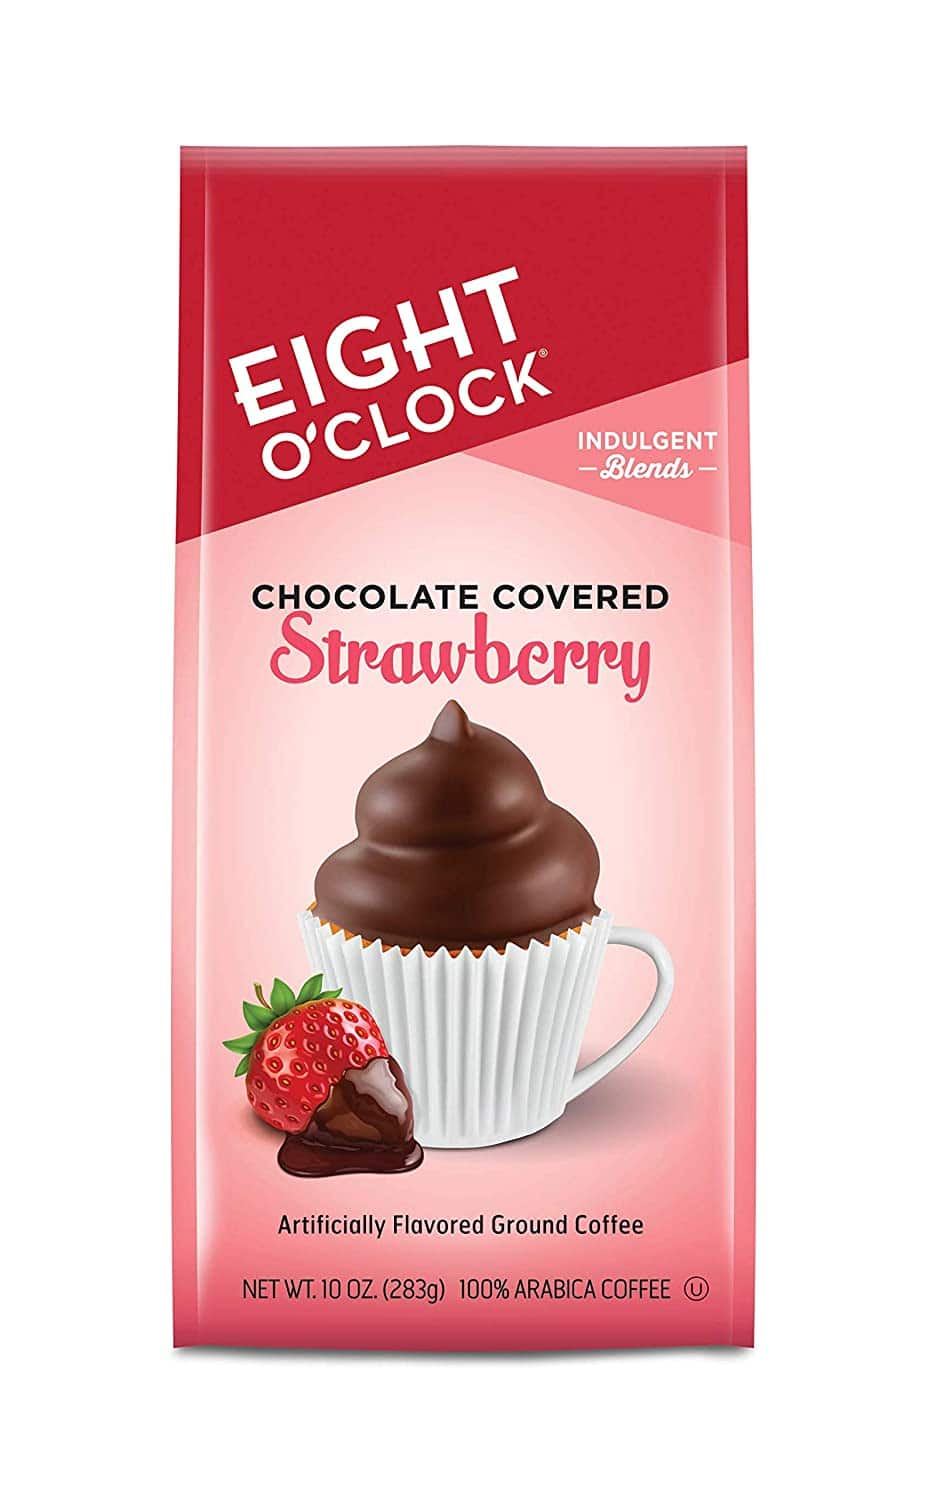 Eight O'Clock Coffee Indulgent Blends Ground Coffee, Chocolate Covered Strawberry, 10 Oz  $4.57 ac S&S 5+ items